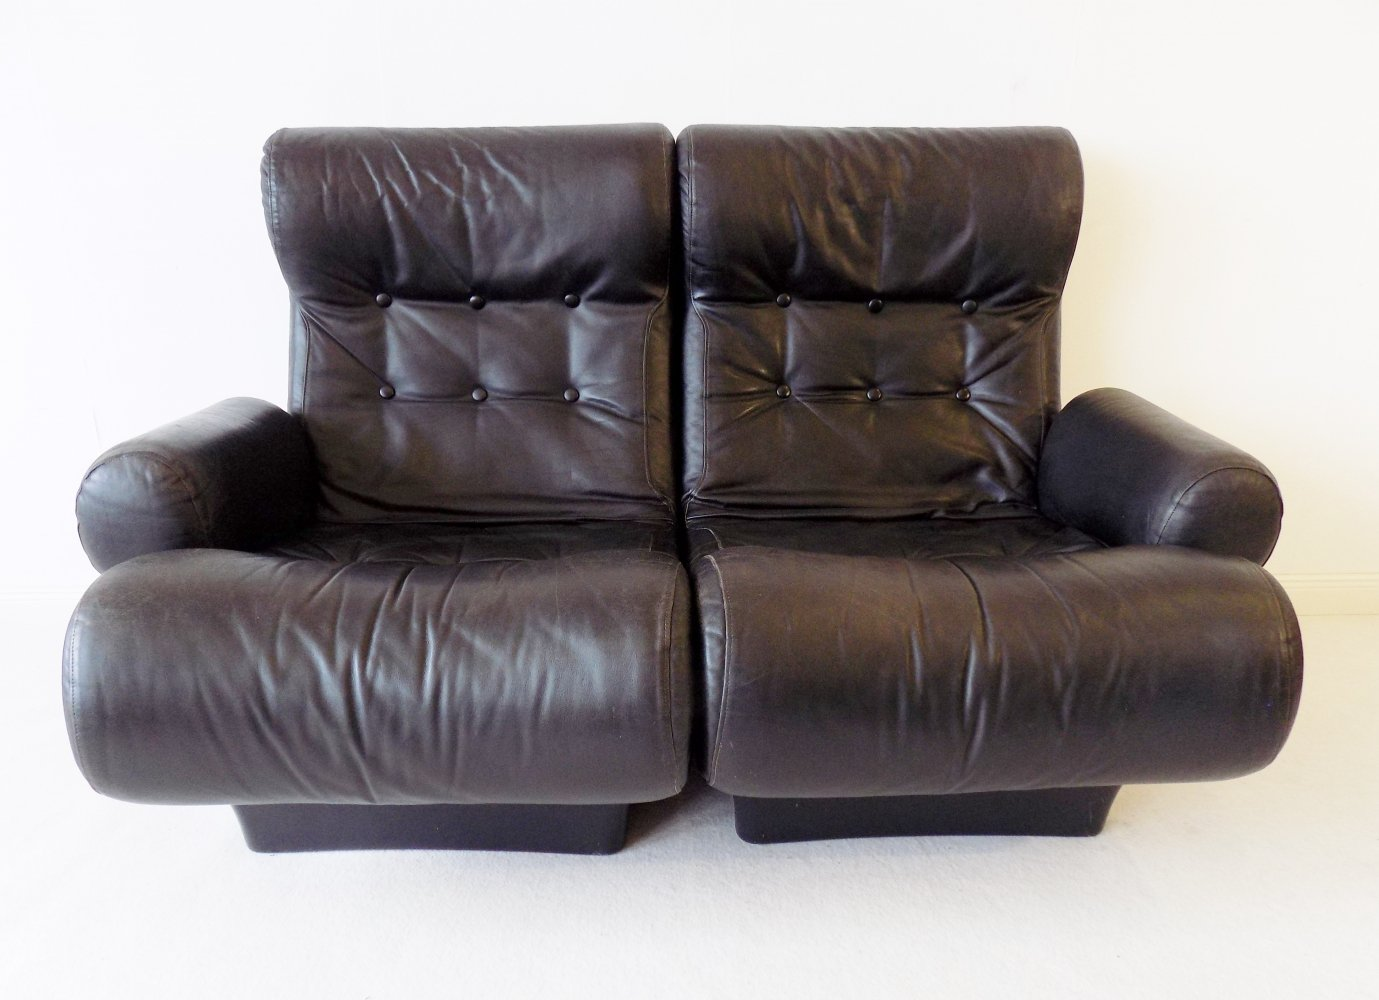 Otto Zapf Sofalette leather lounge chair modul system 2 seater